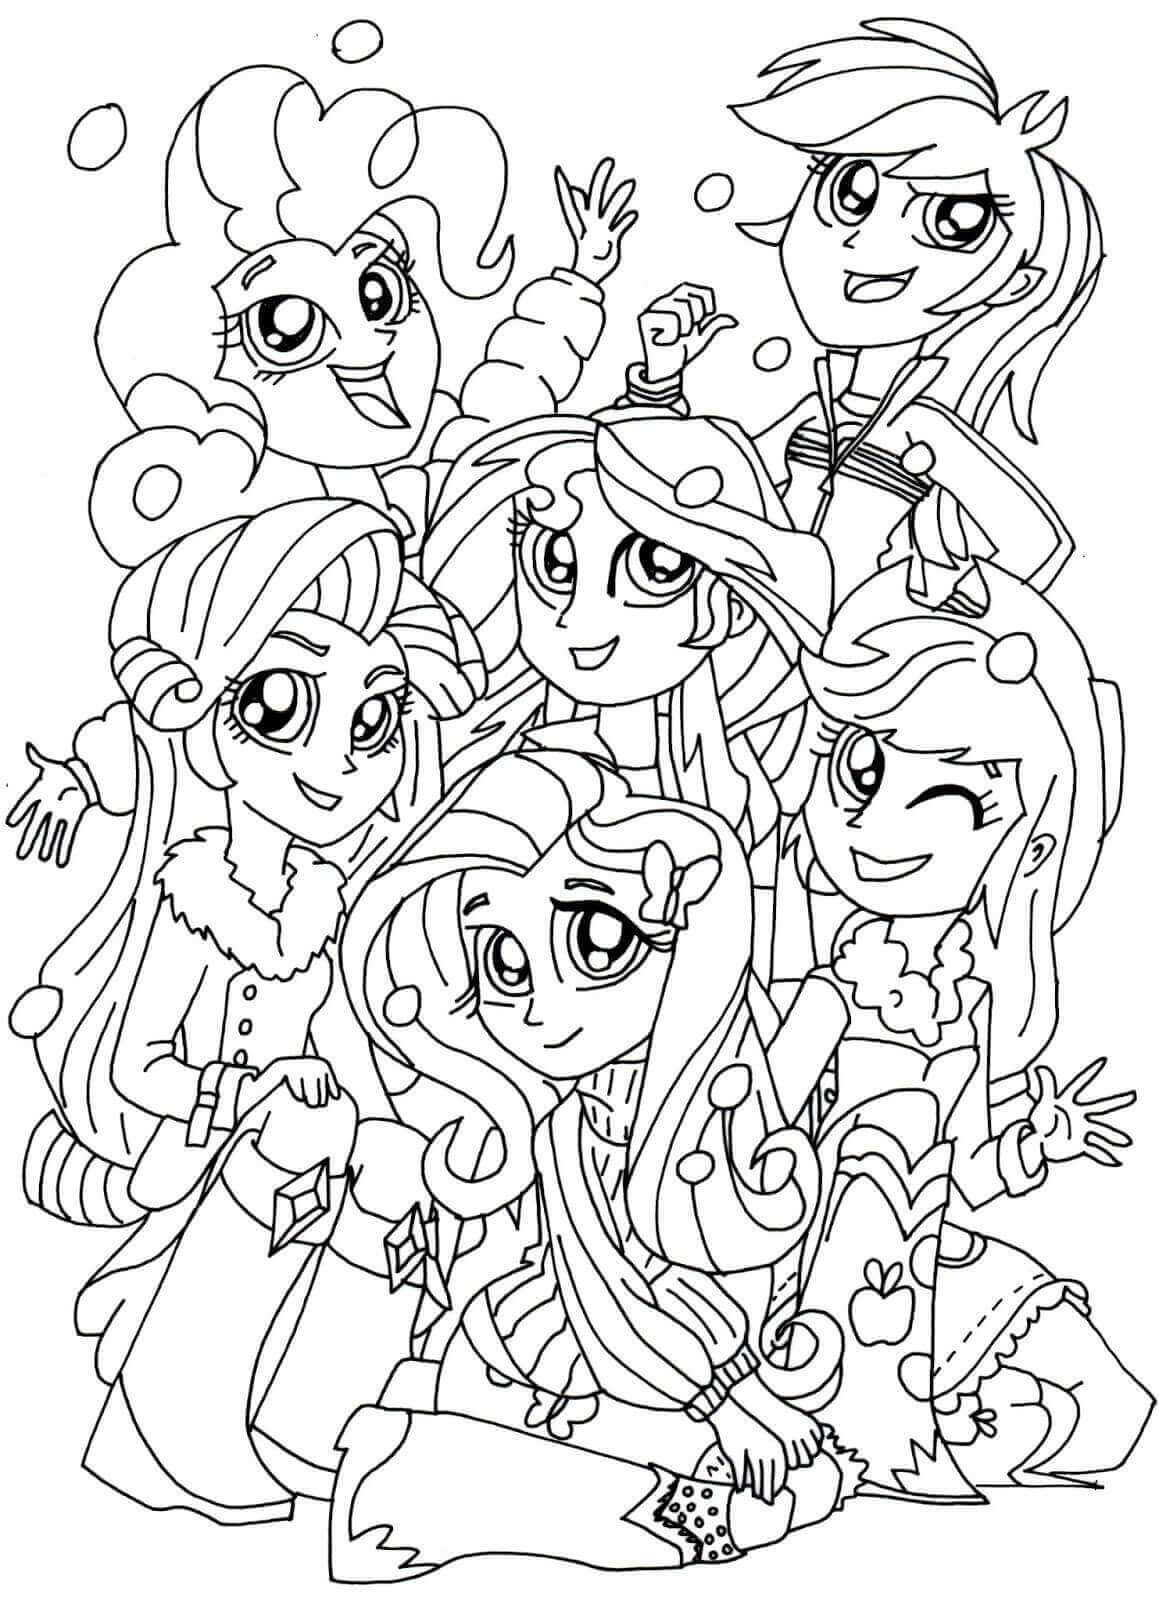 The Rainbooms From My Little Pony Equestria Girls Coloring Page